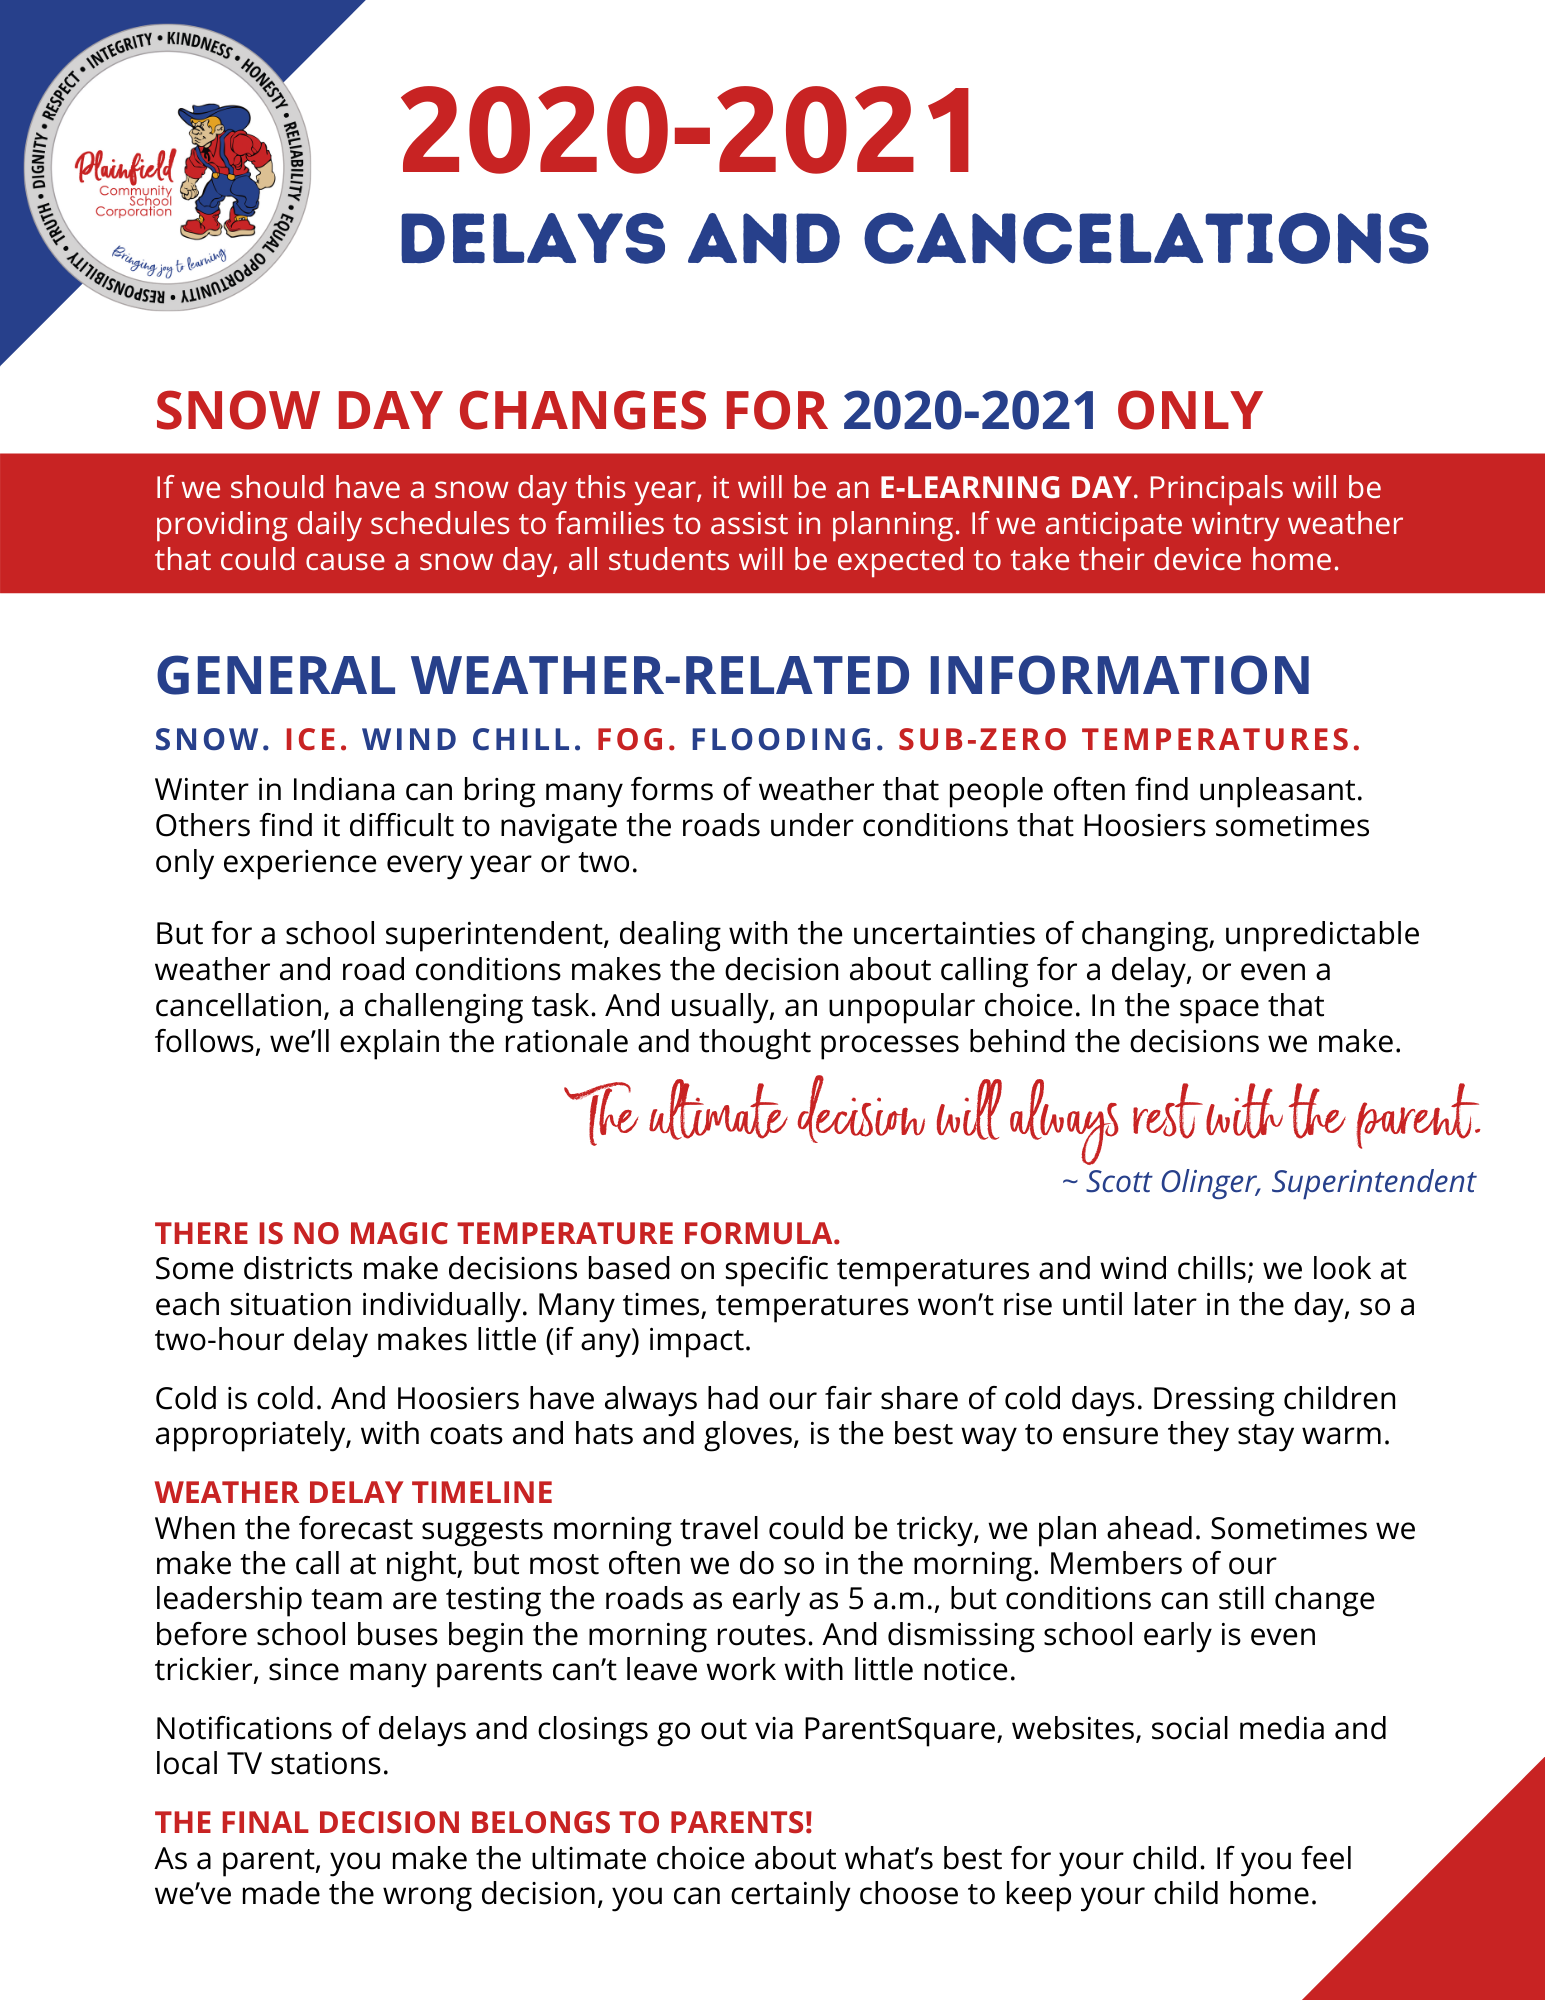 2020-2021 Delays and Cancelations